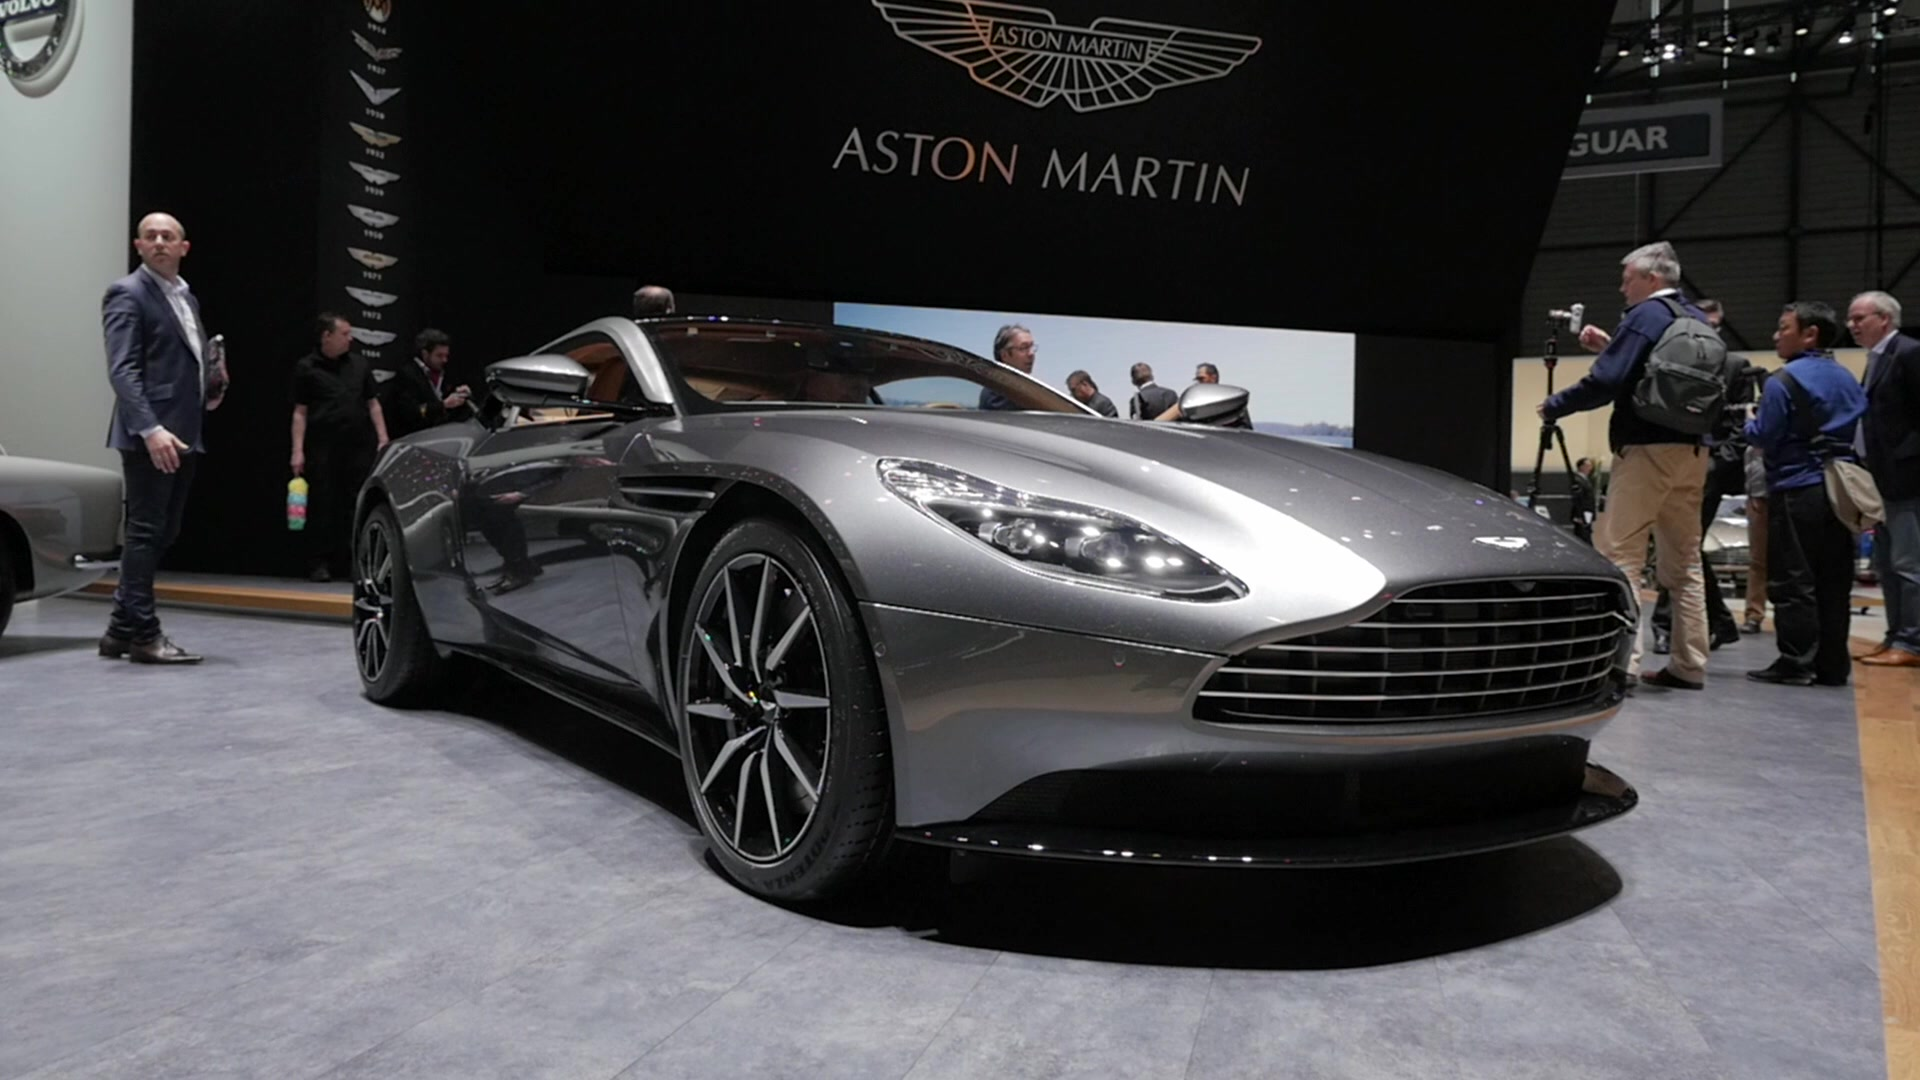 2017 Aston Martin DB11 | 2016 Geneva Motor Show | Beauty-Roll